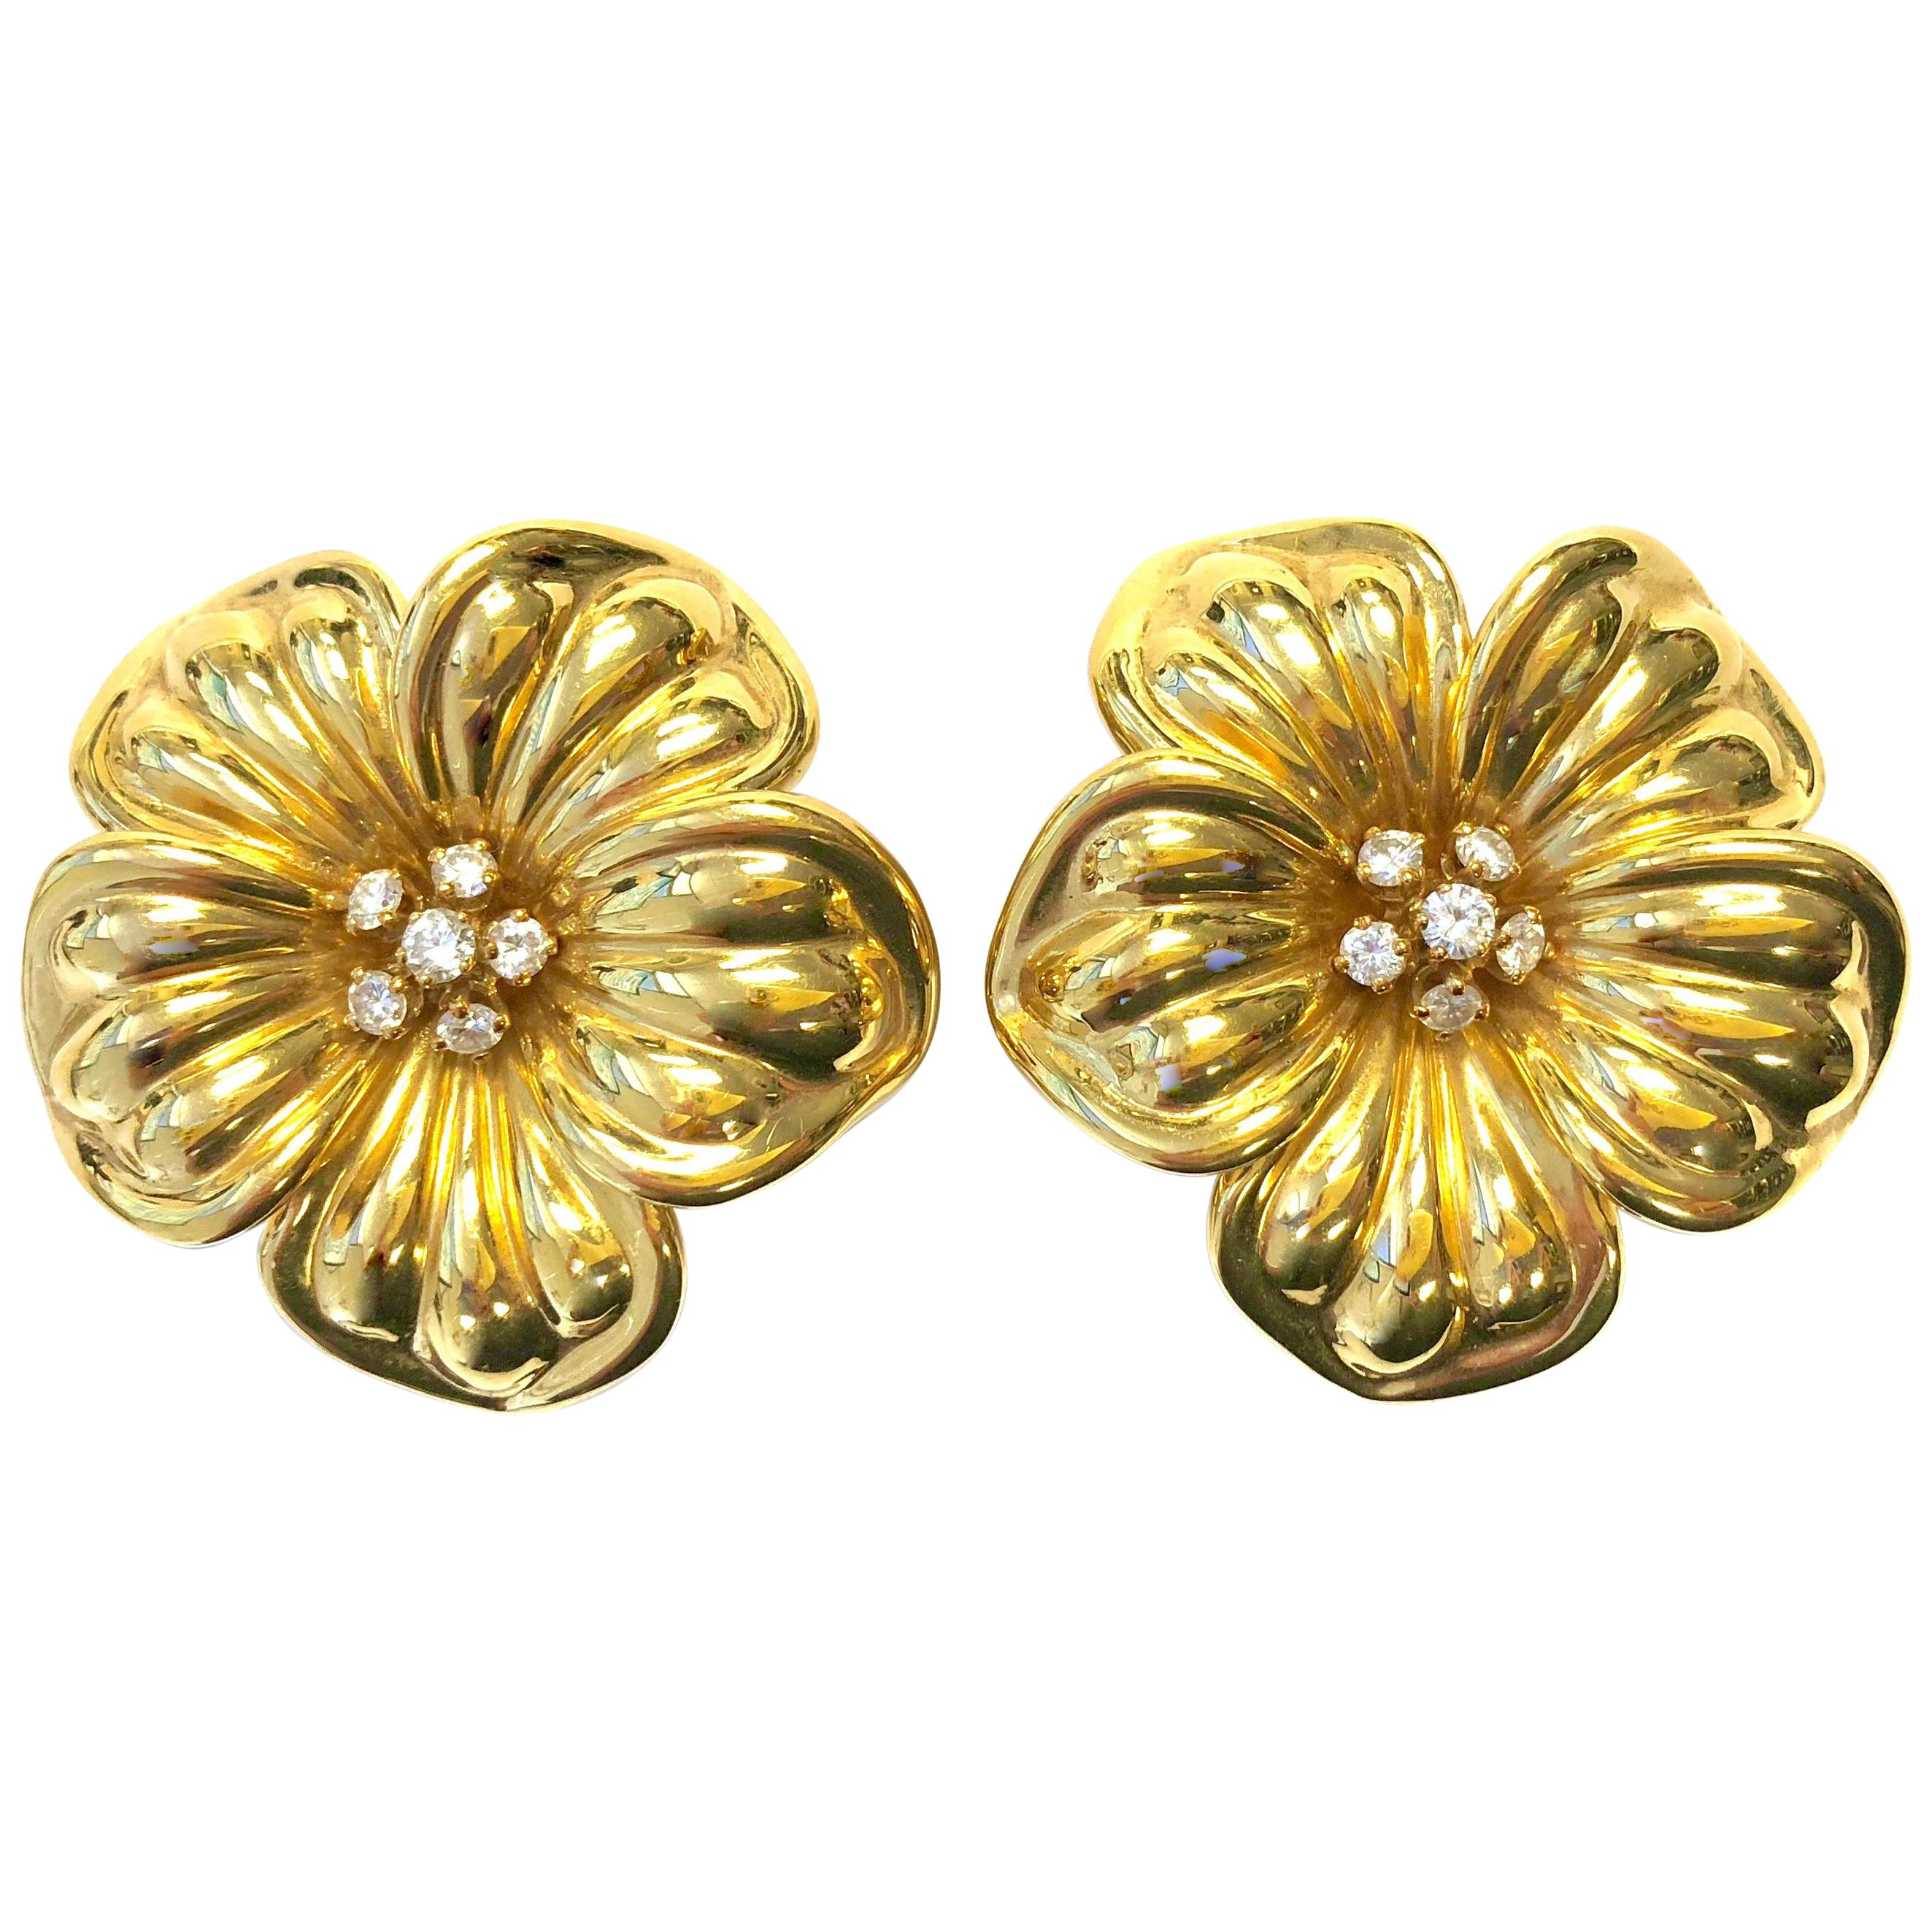 bf0ce1cfe4d Vintage Van Cleef and Arpels Large Diamond and Gold Magnolia Flower Earrings  at 1stdibs